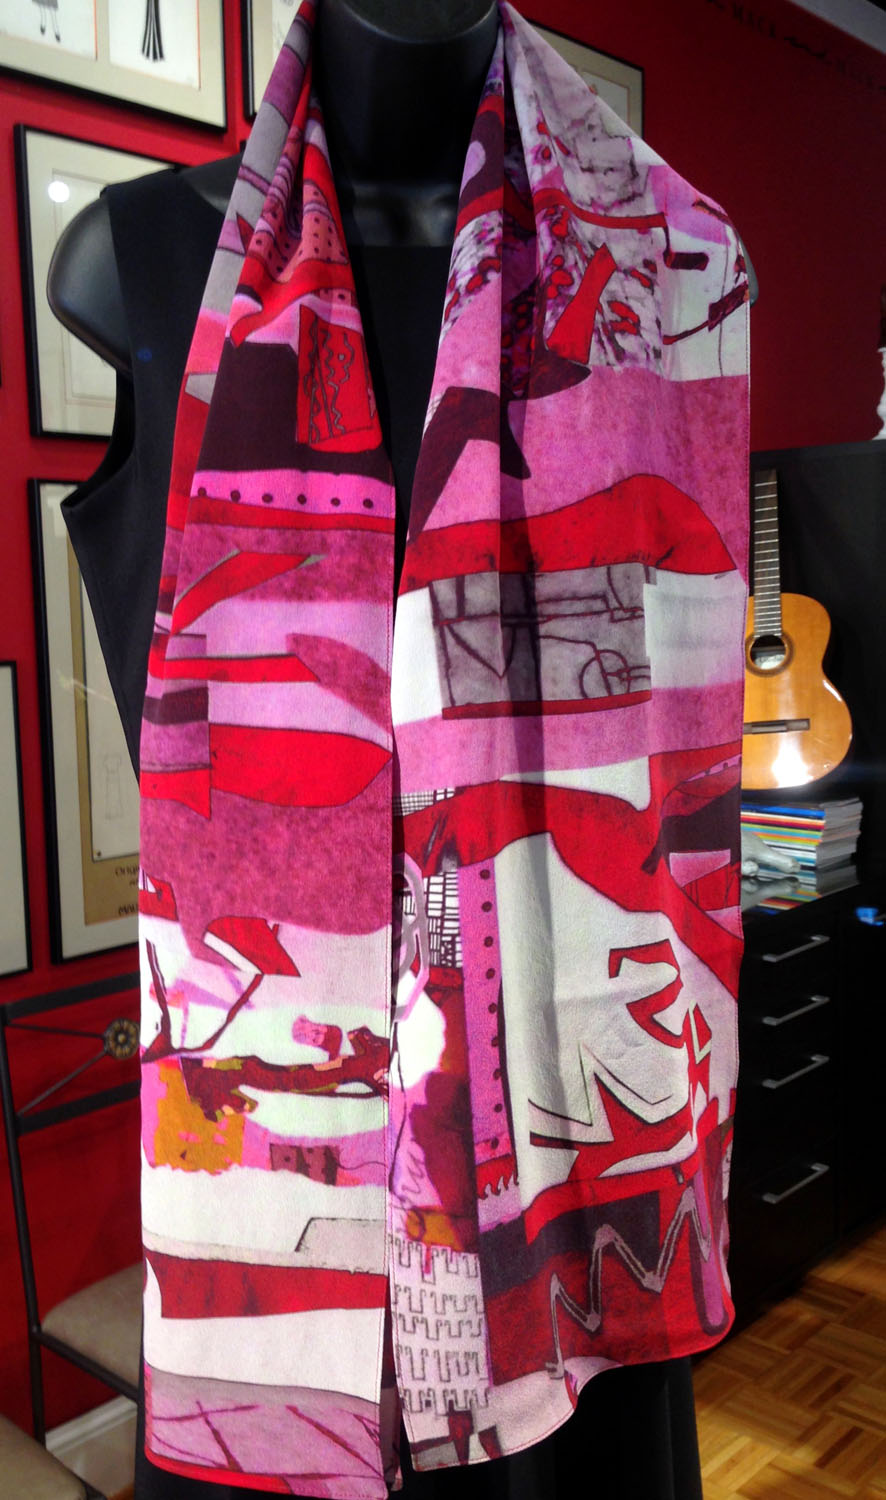 HLR-art scarf-silk-original-one of a kind-red-pink-garnet -rose-stone-pewter-grey-contemporary-custom printed-made in usa.jpg